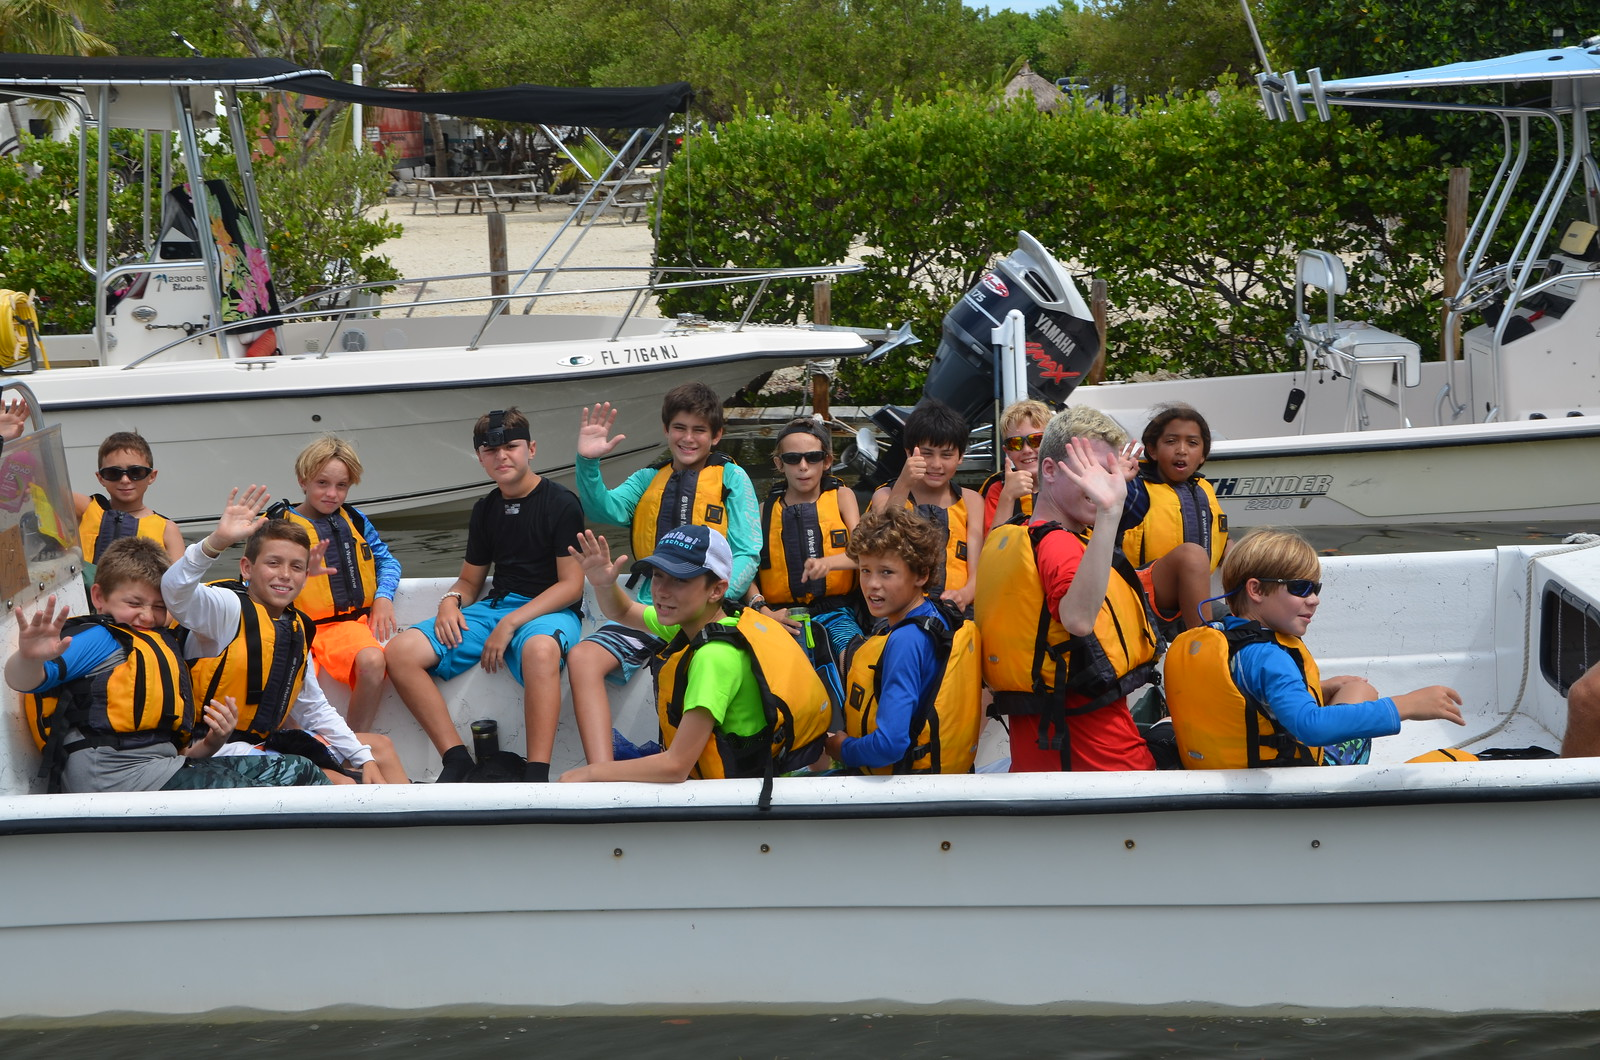 Campers departed the campground for a snorkeling trip to Looe Key Reef.